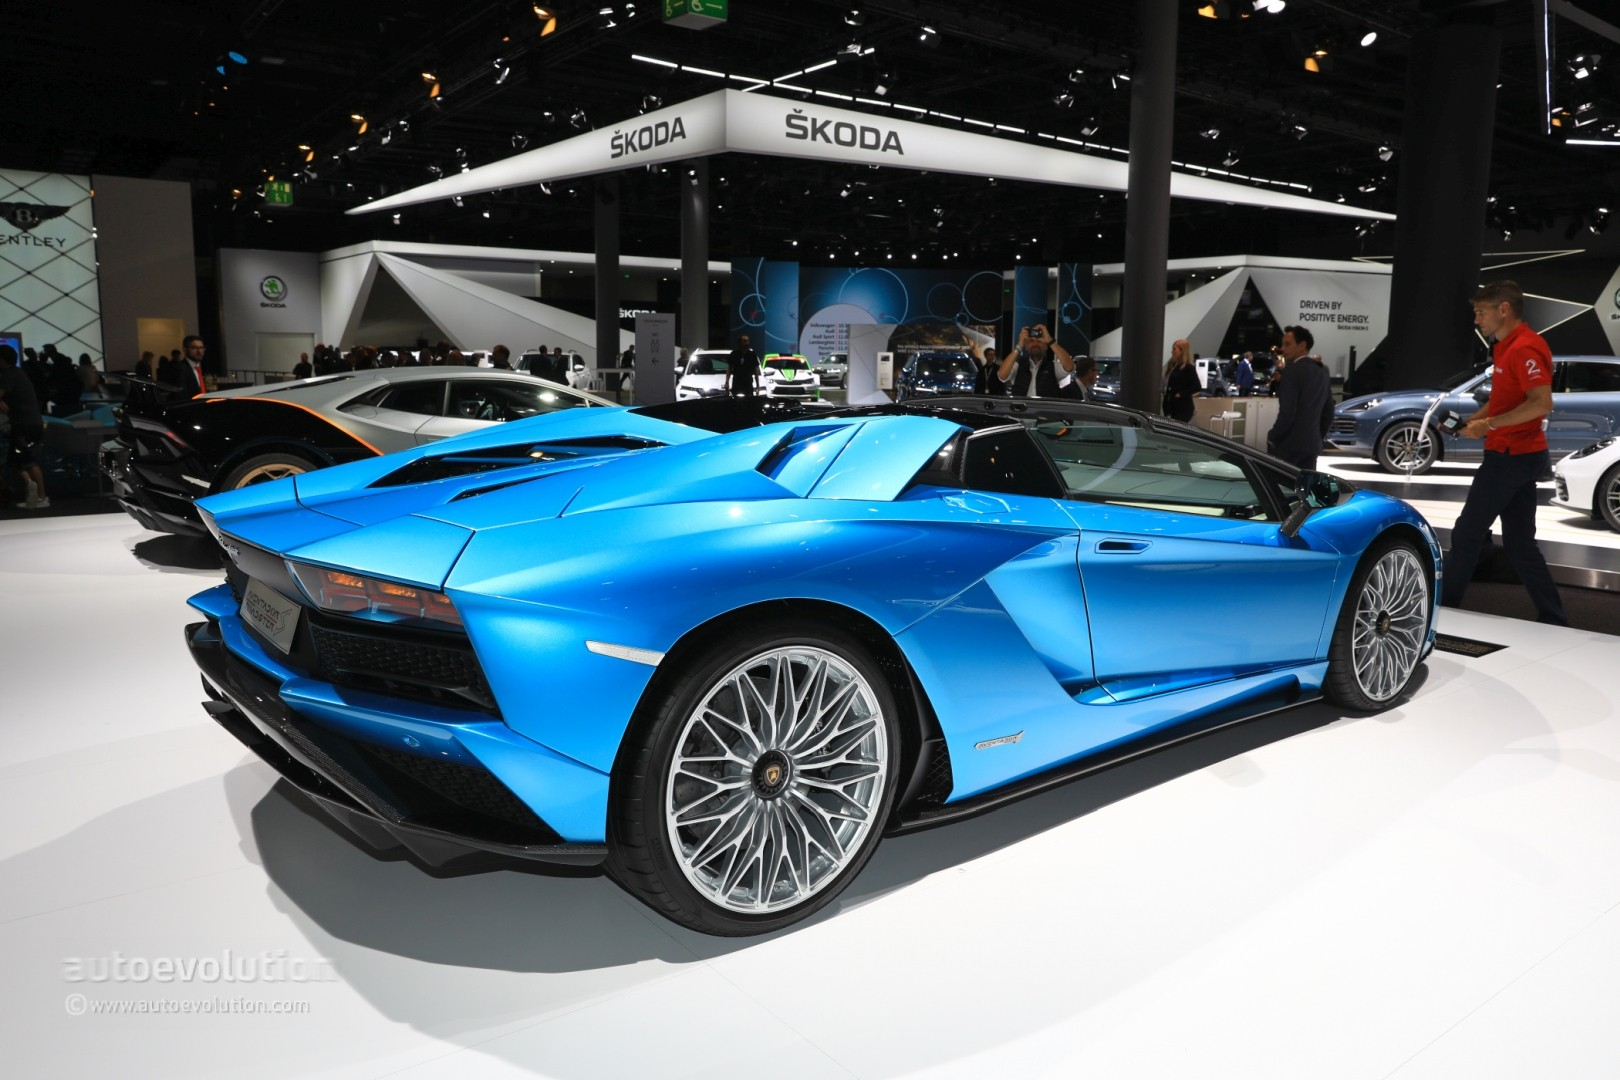 lamborghini aventador s roadster parades blu aegir color in frankfurt autoevolution. Black Bedroom Furniture Sets. Home Design Ideas